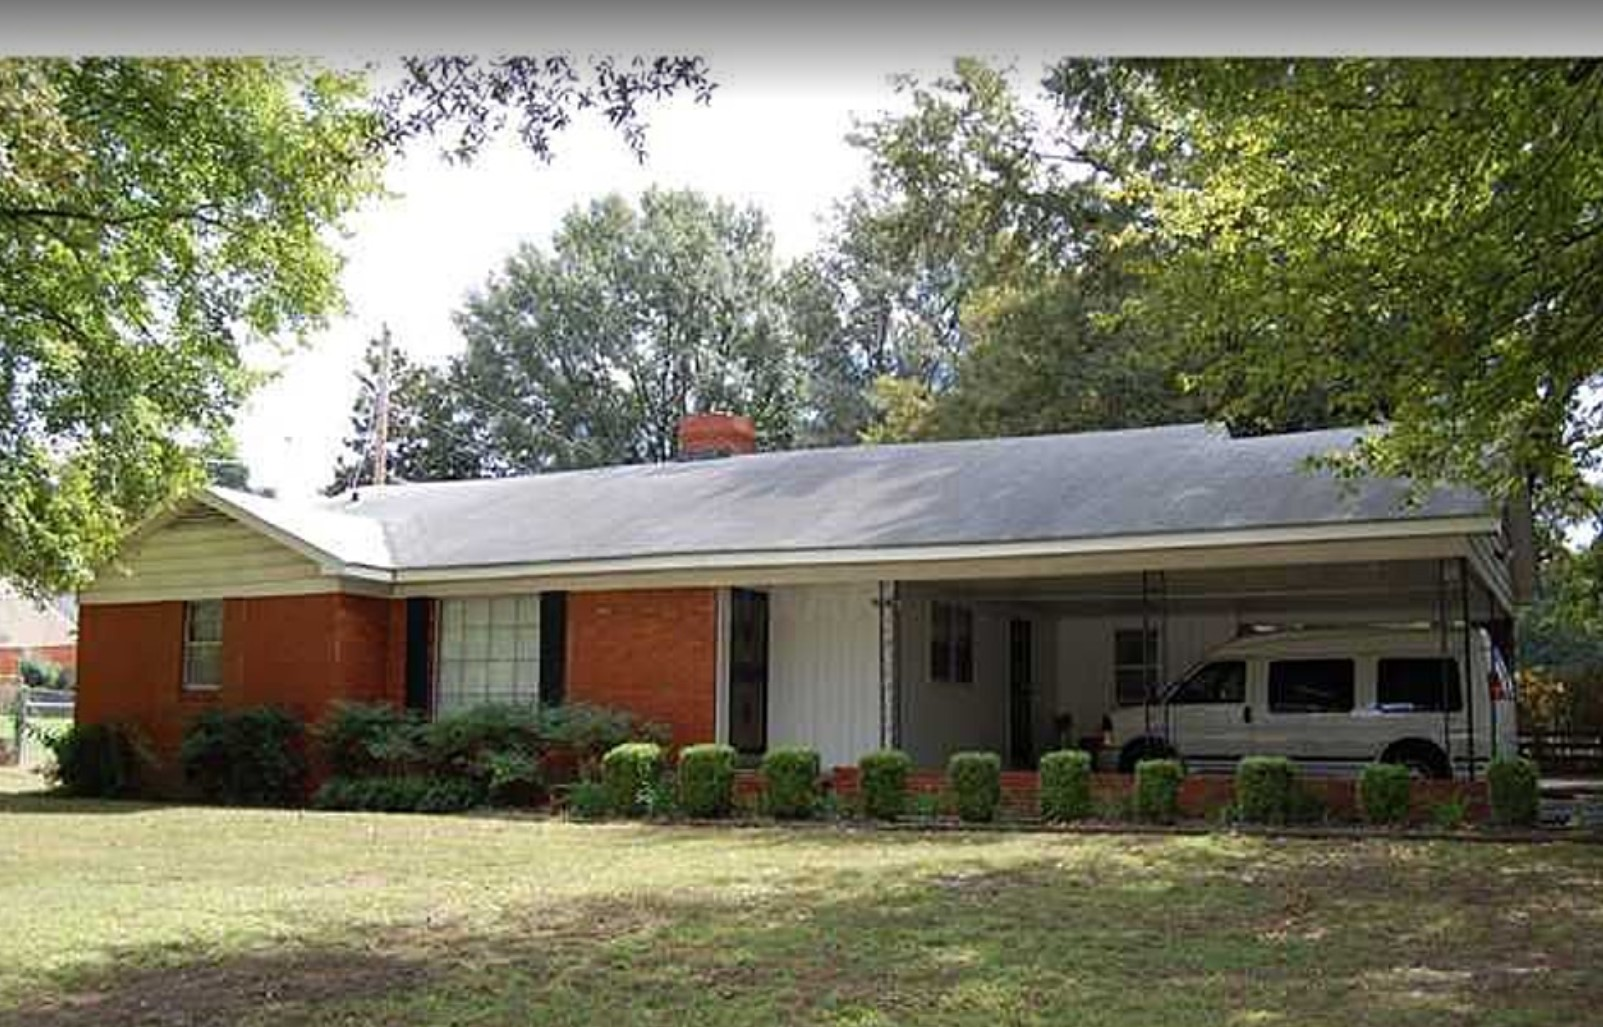 Sikh Center Of The Mid South- Memphis